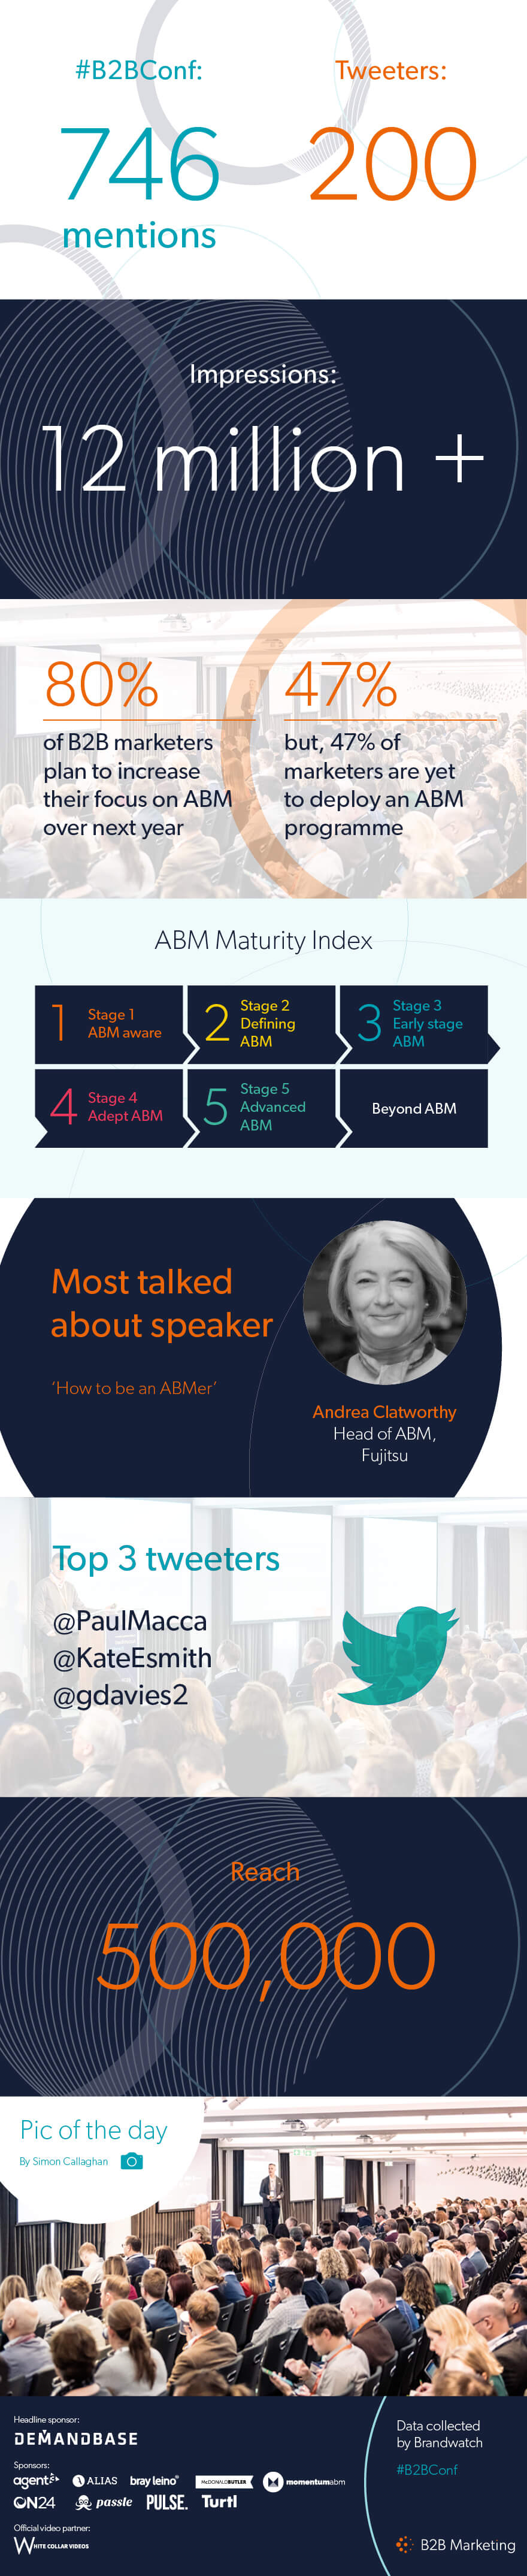 Account-Based Everything: Key takeaways from B2B Marketing's ABM Conference [INFOGRAPHIC]